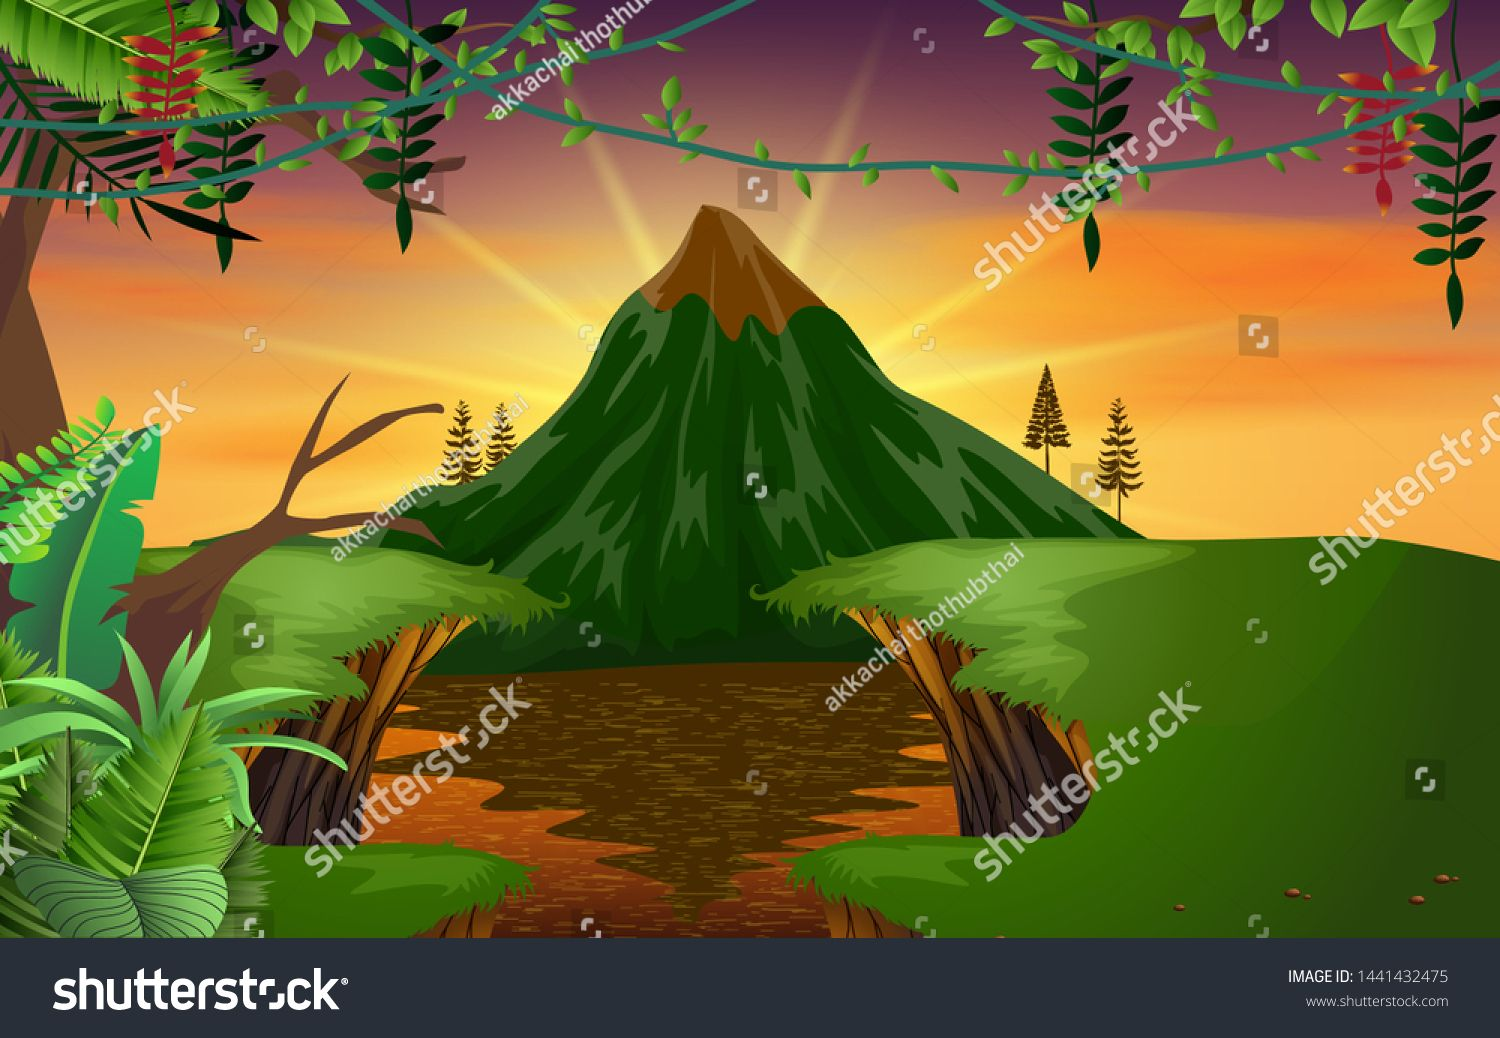 Landscape Of Lagoon With The Mountain Background In Morning Ad Ad Lagoon Landscape Mountain Morning Mountain Background Landscape Painting